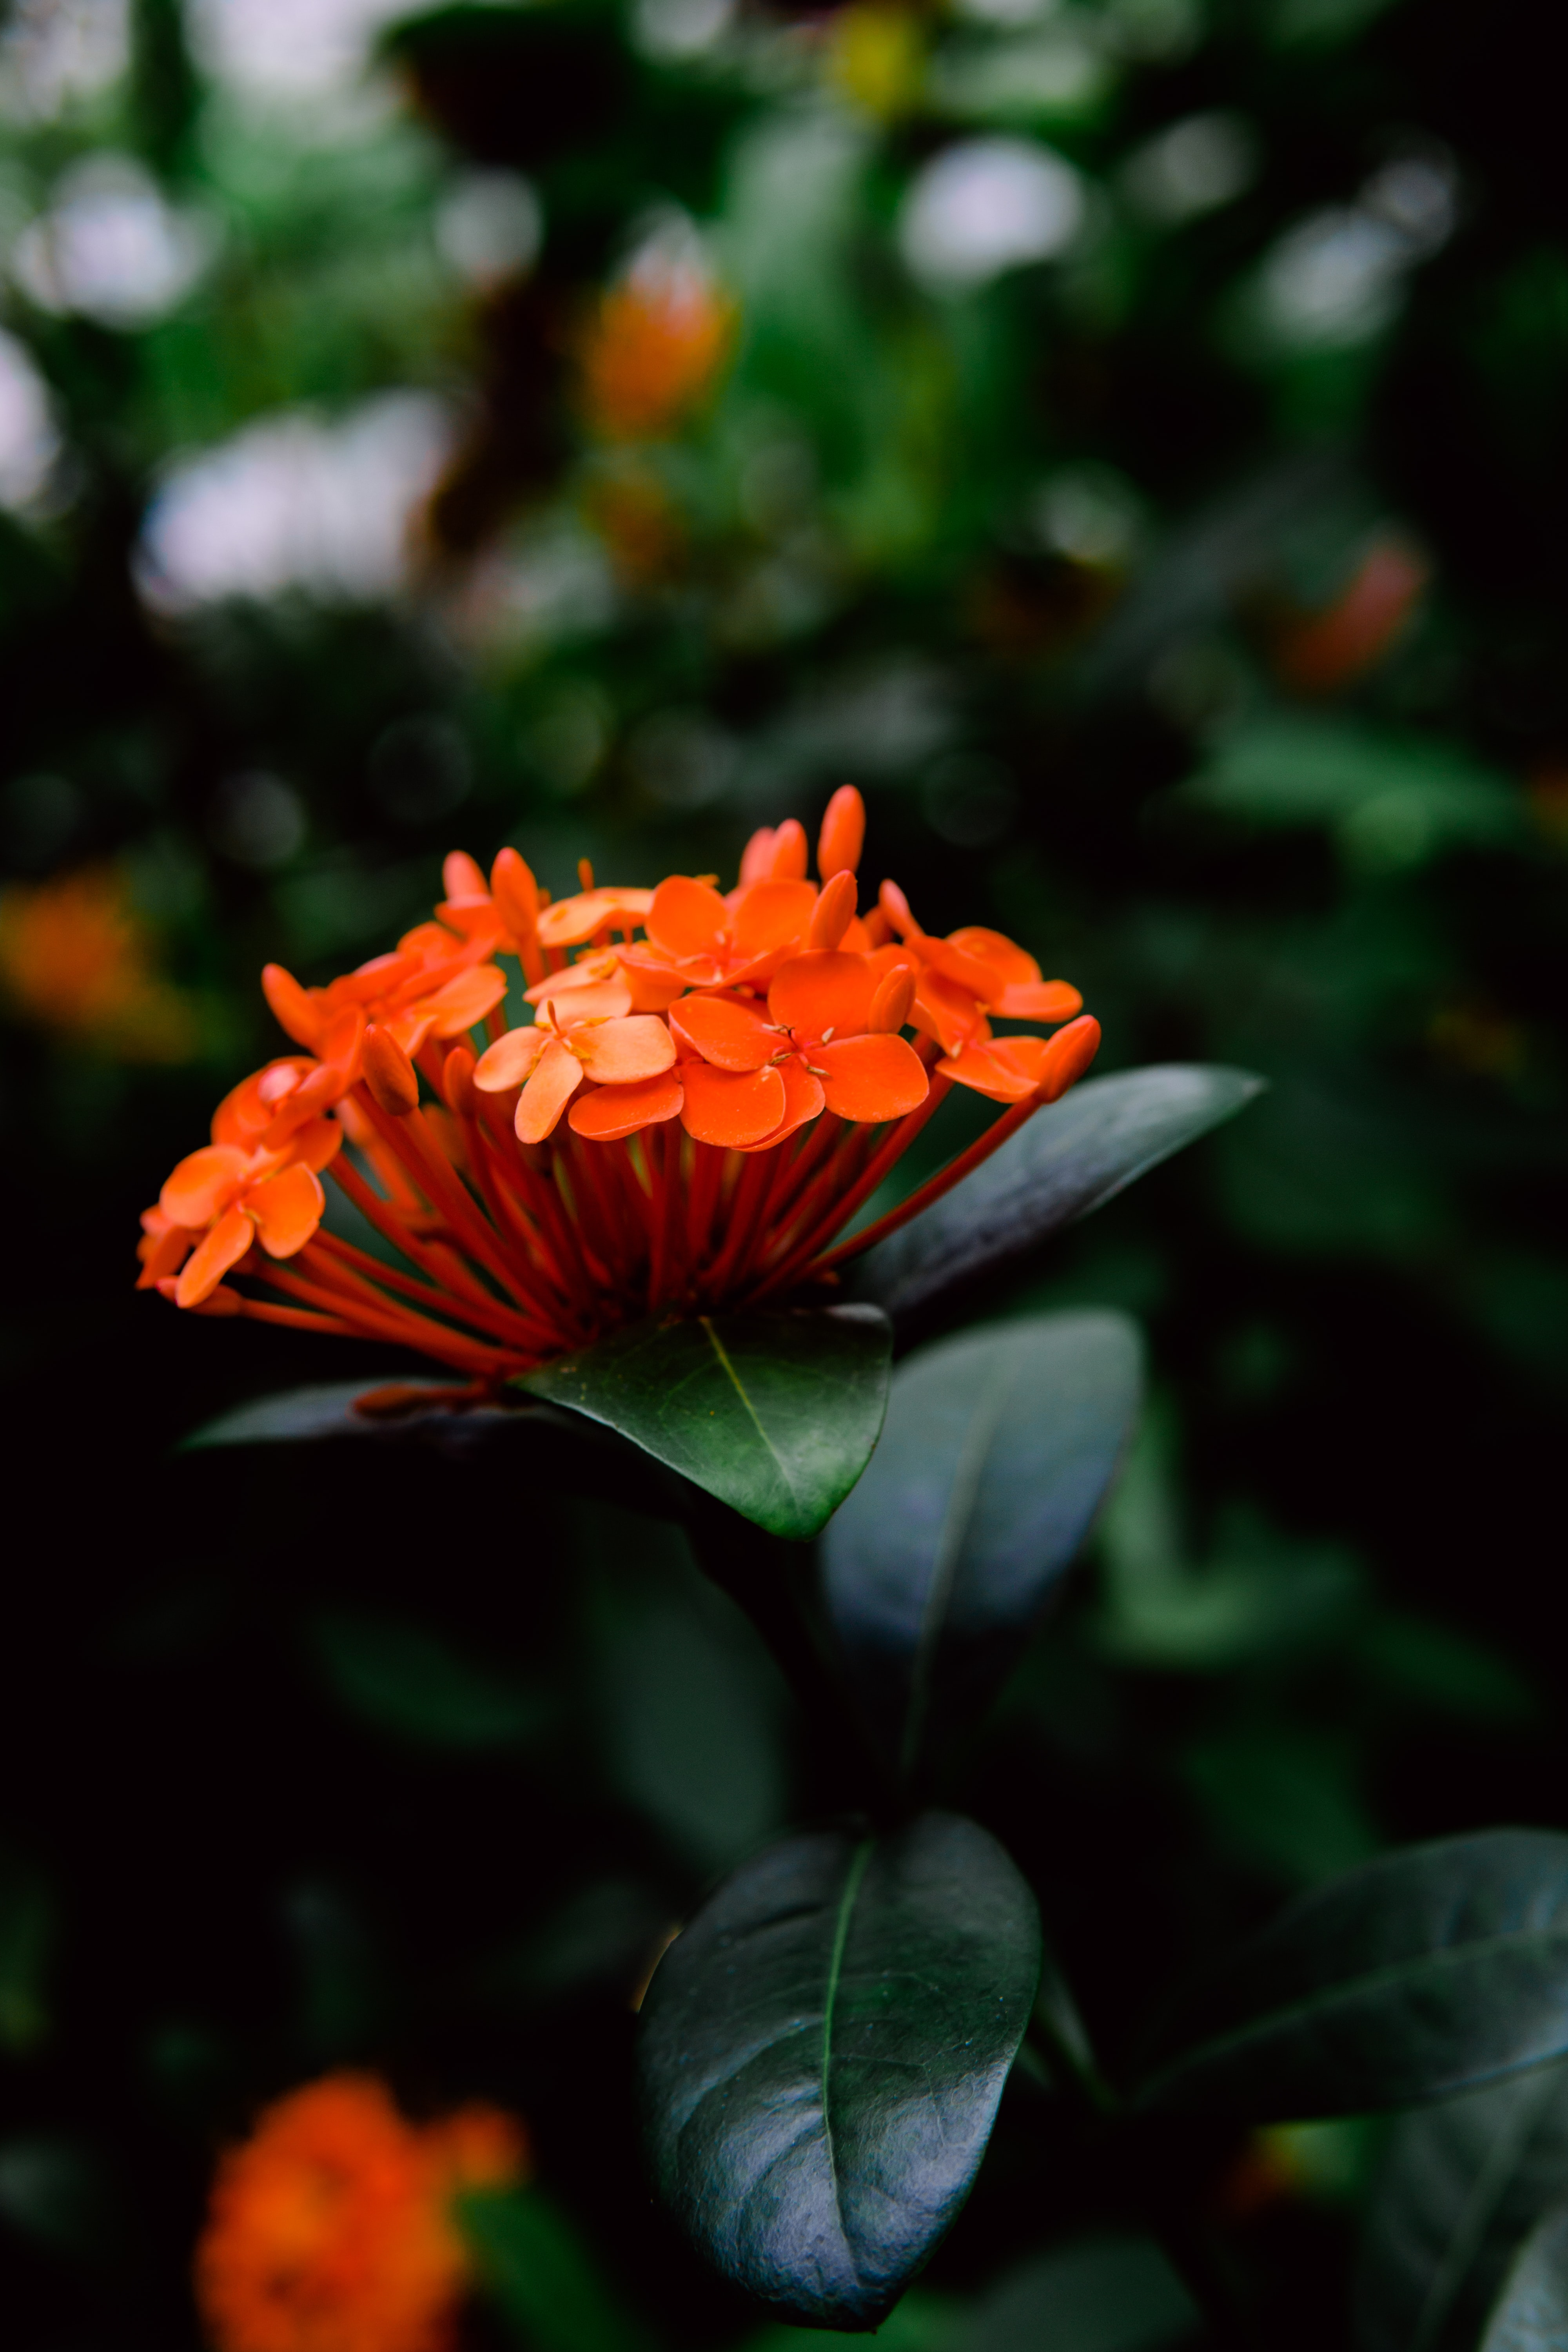 close up photography of orange petaled flowers